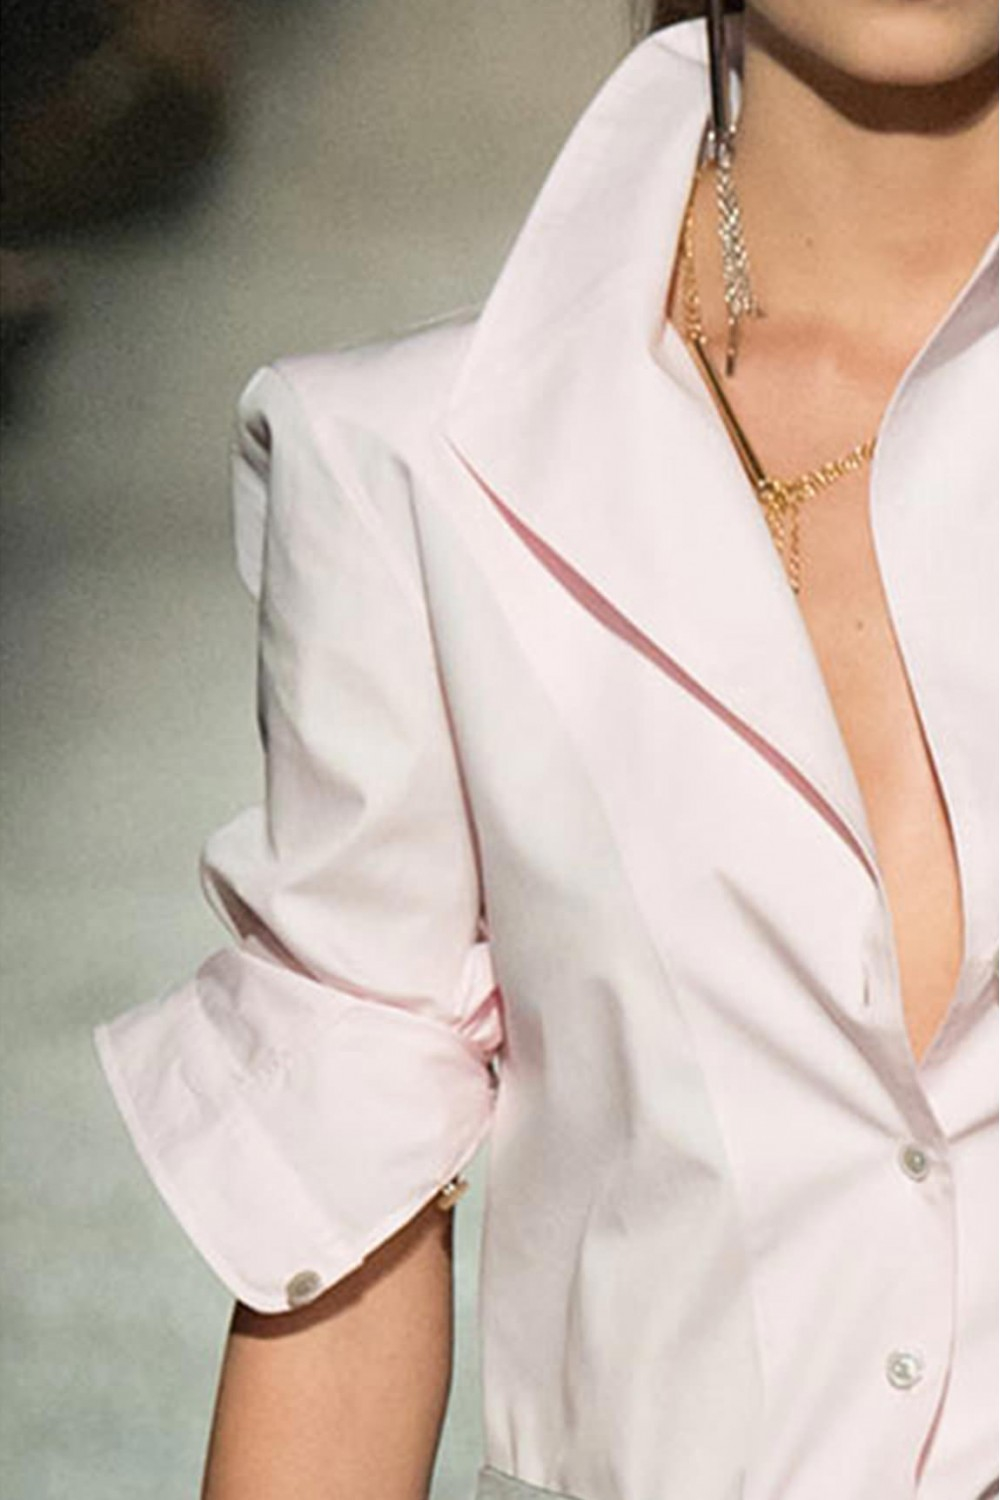 White Blouse Large Collar - Long Blouse With Pants